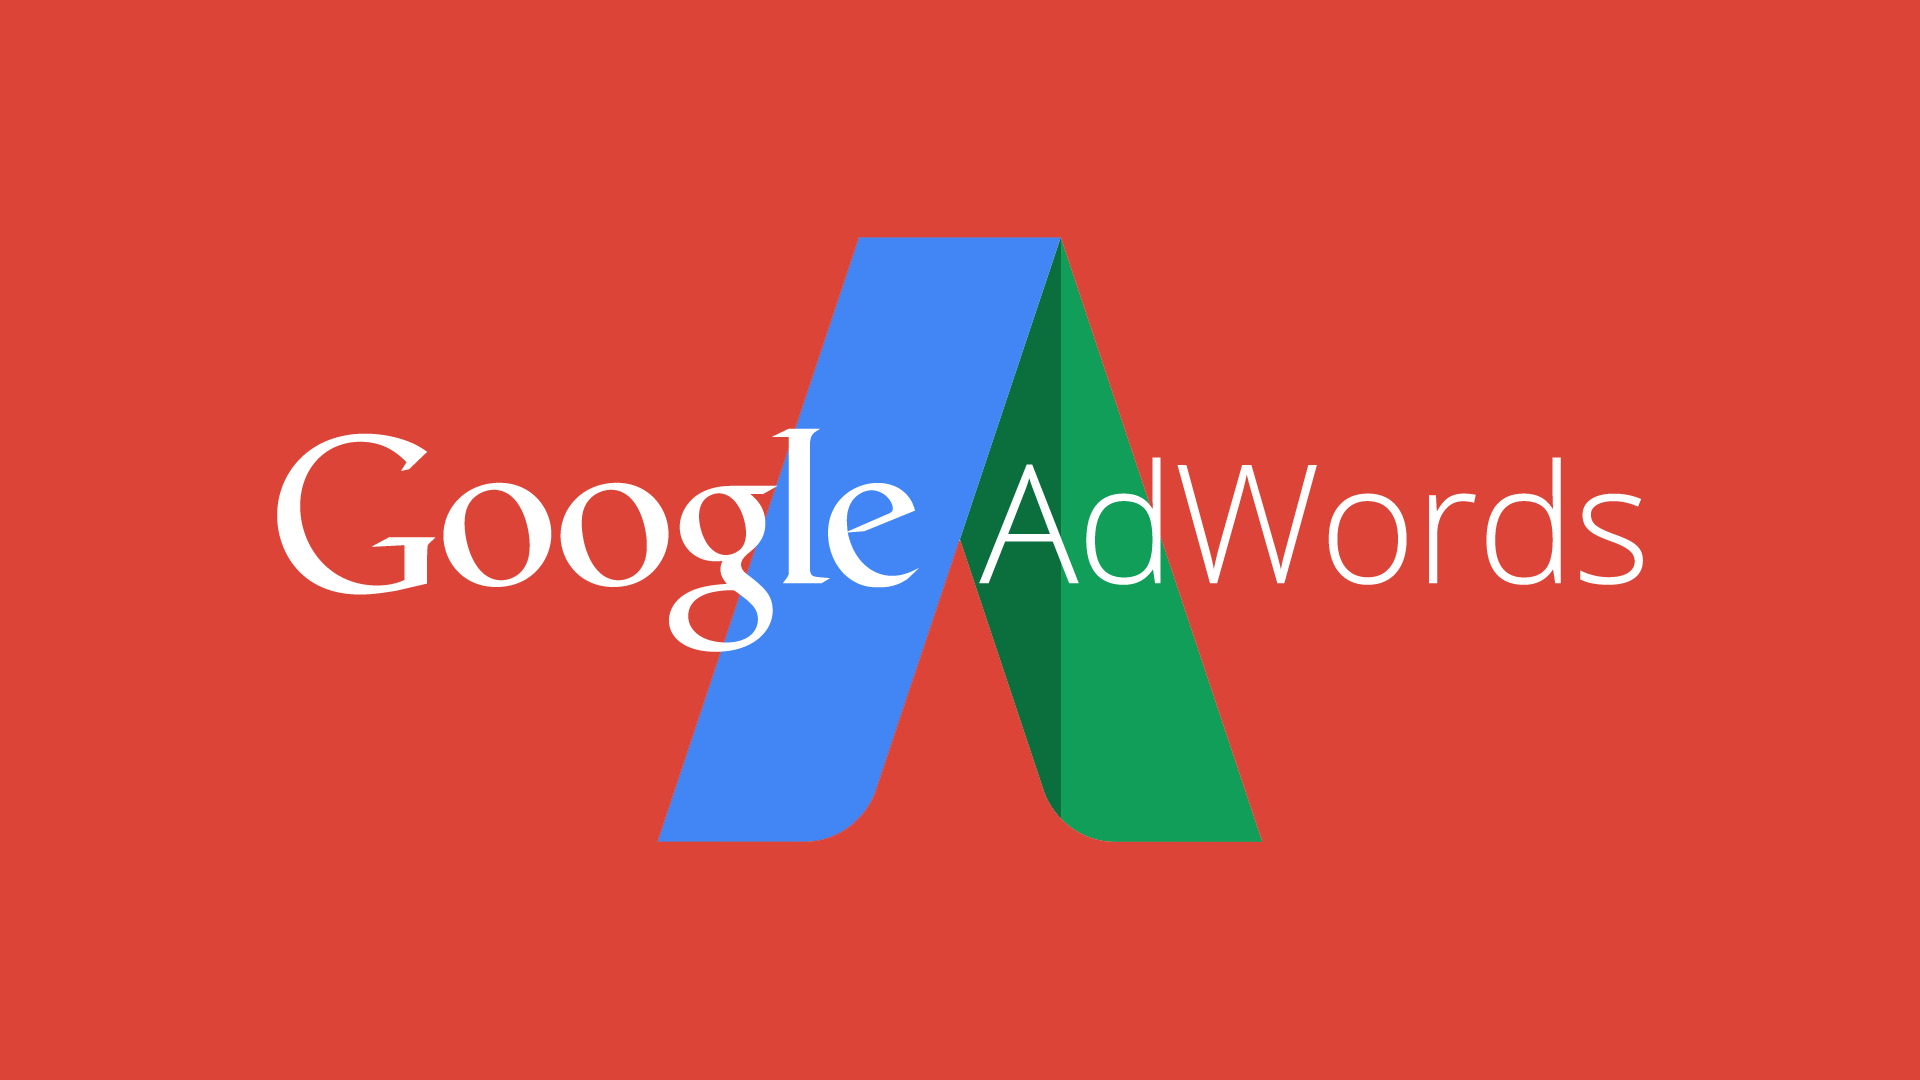 Types Of Bidding Strategies In Google Adwords